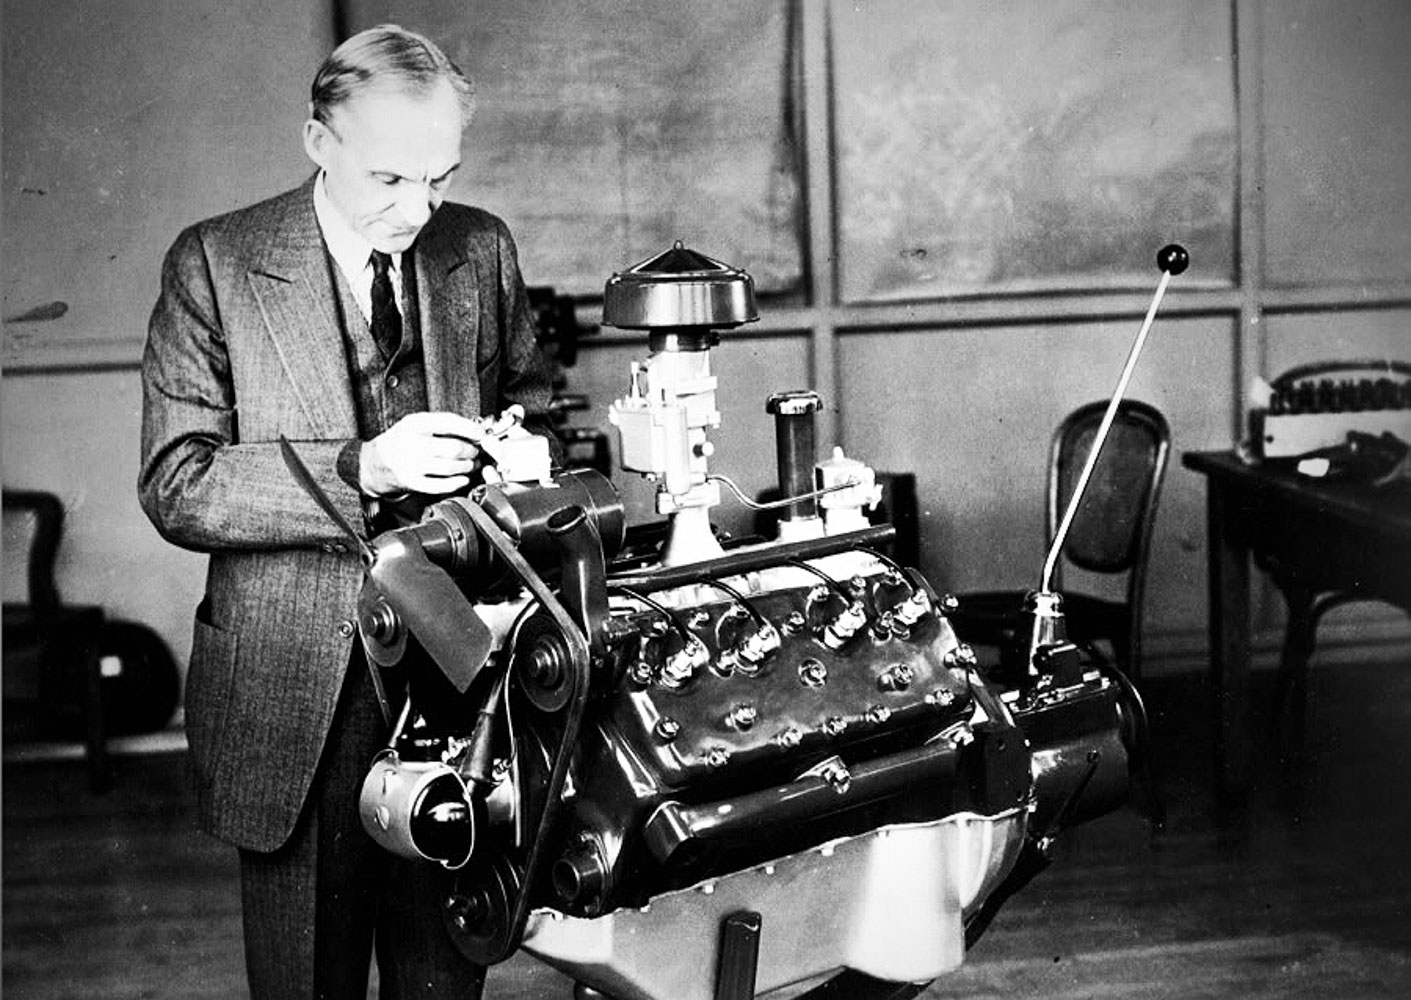 the history of ford's iconic flathead engine